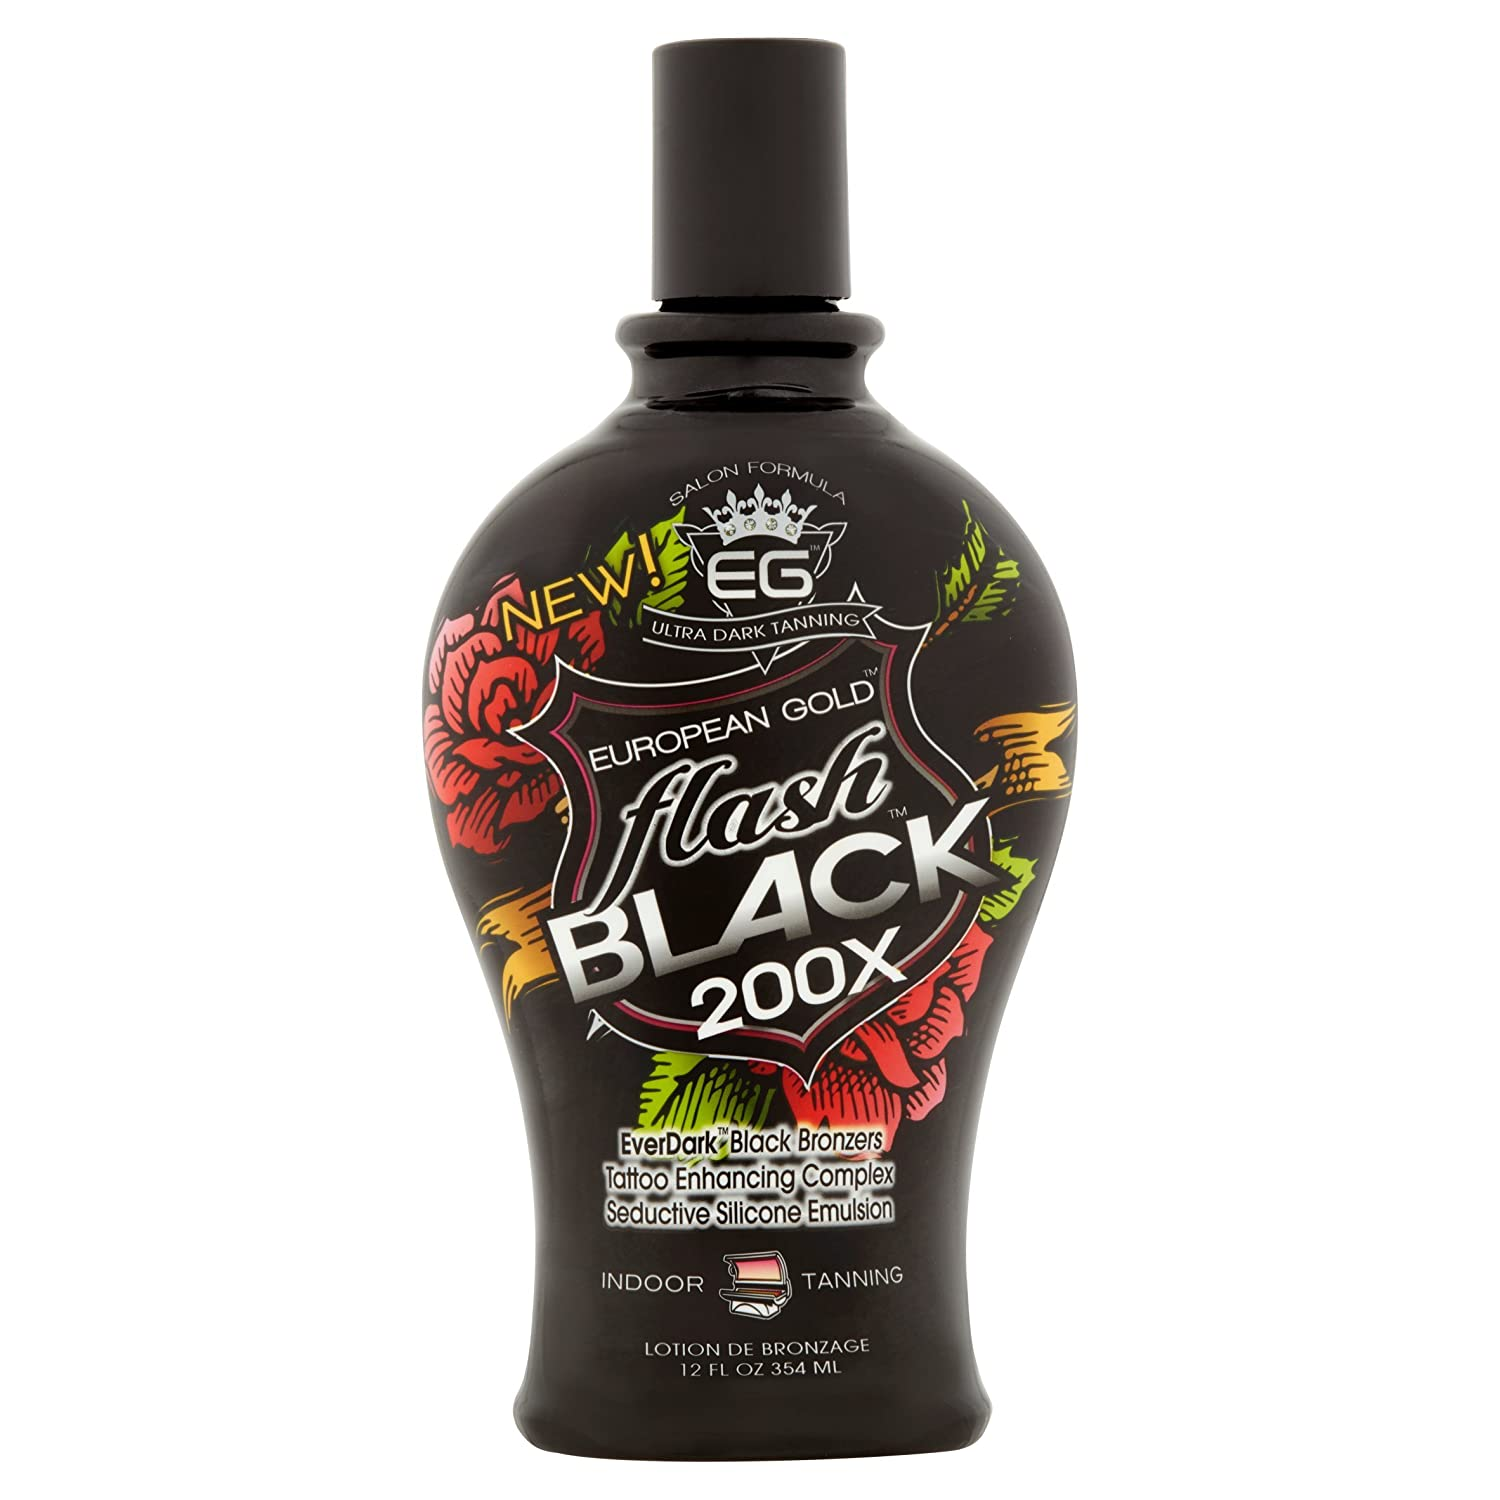 European Gold Flash Black 200x Ever Indoor Tanning Lotion